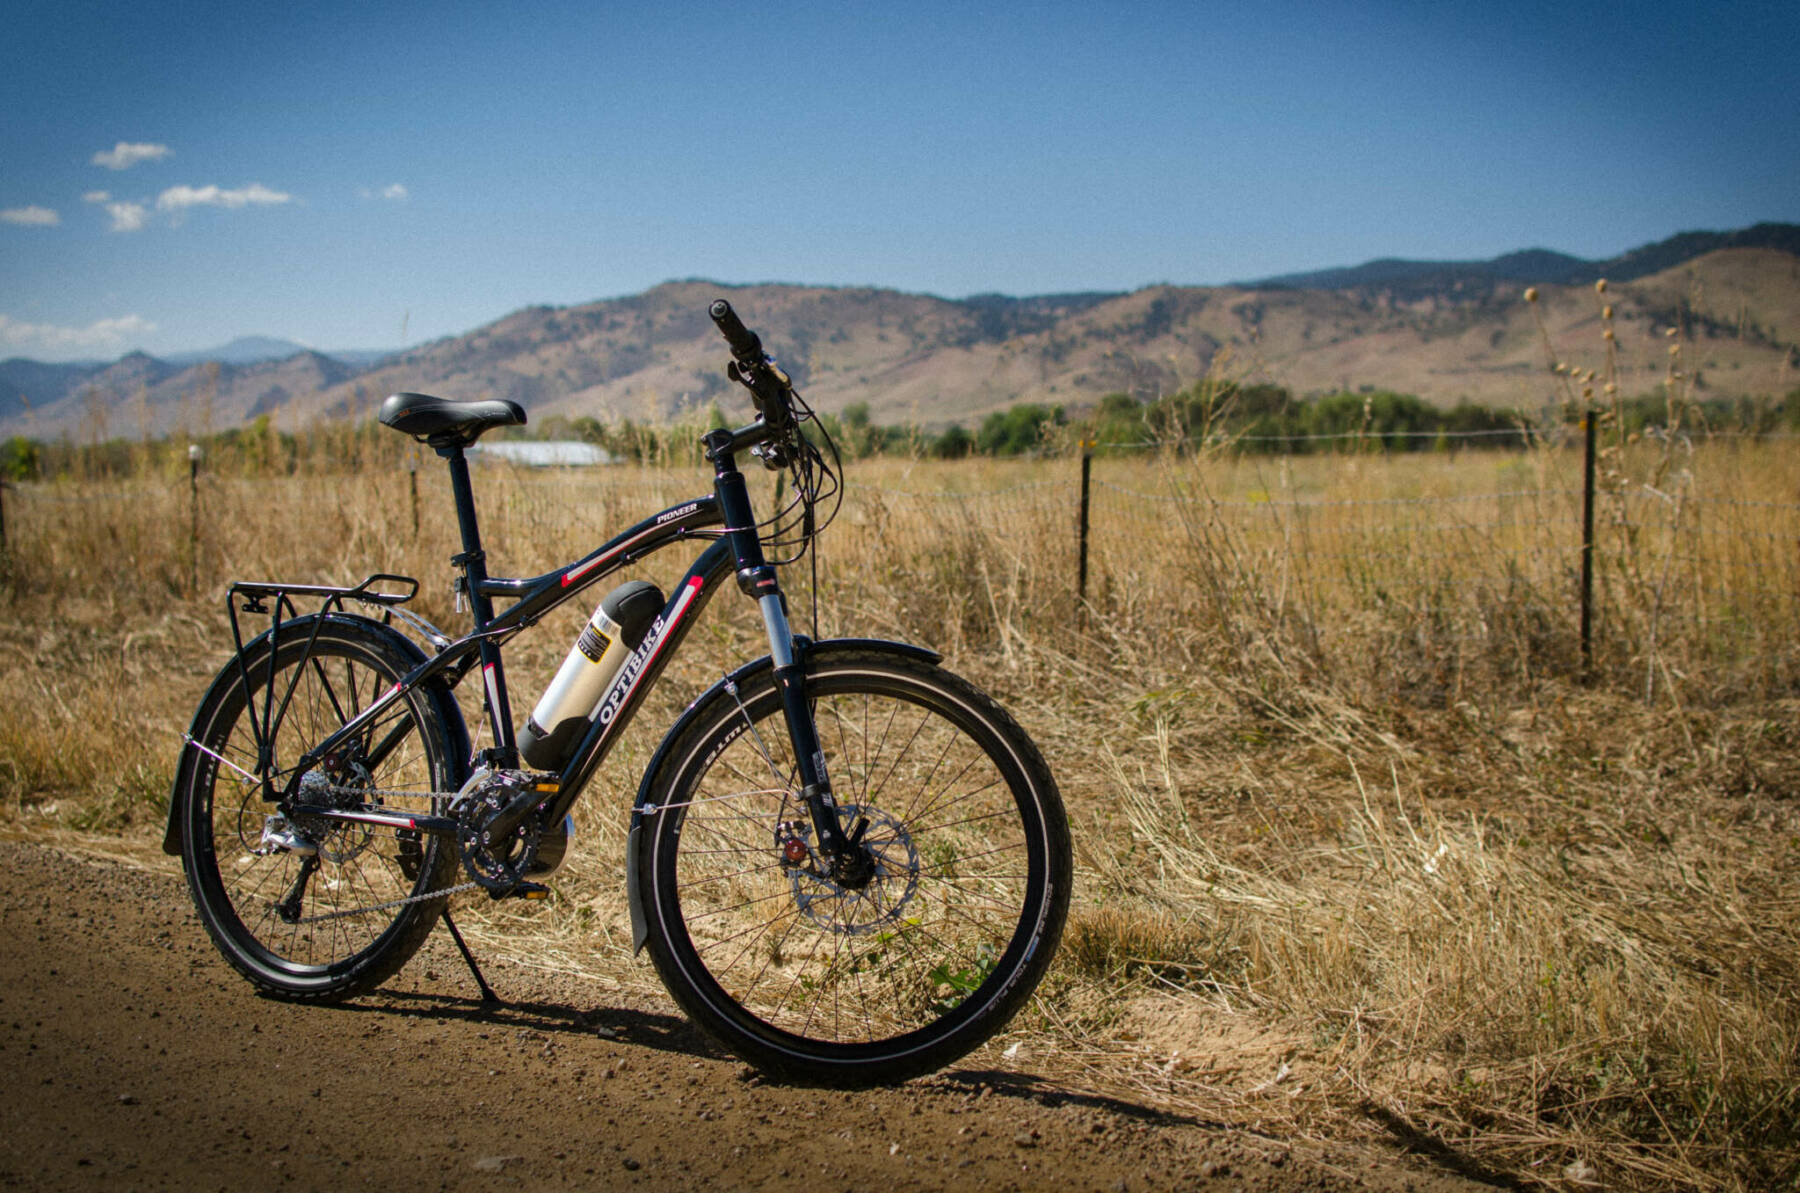 Optibike pioneer allroad with mountains in the background